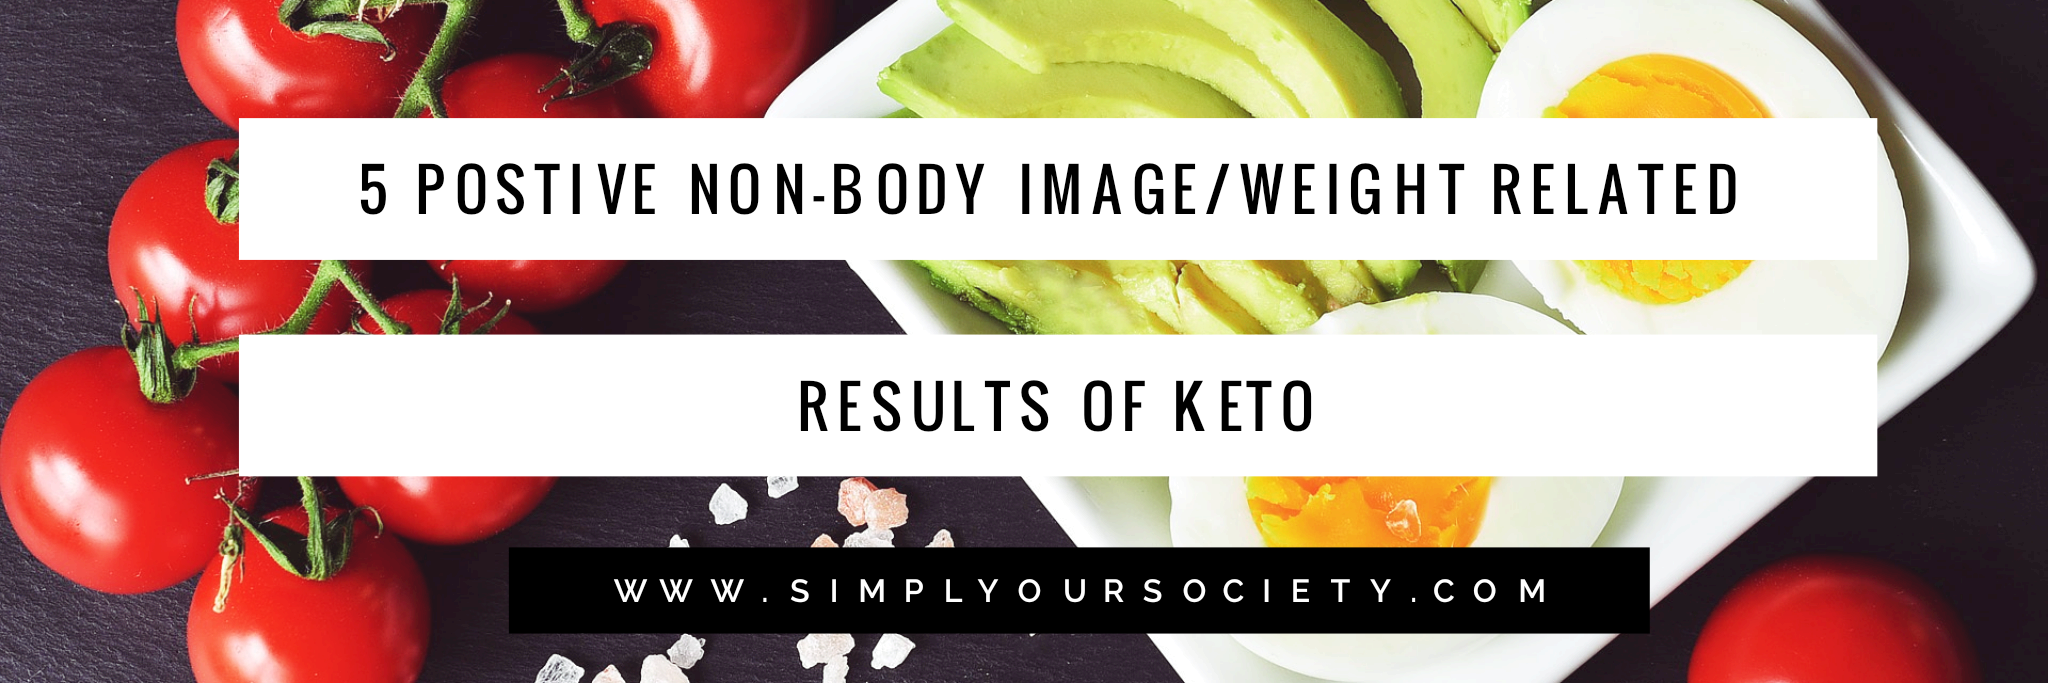 keto ketogenic diet keto foods cooking nutrition health healthy weightloss eating body image low carb